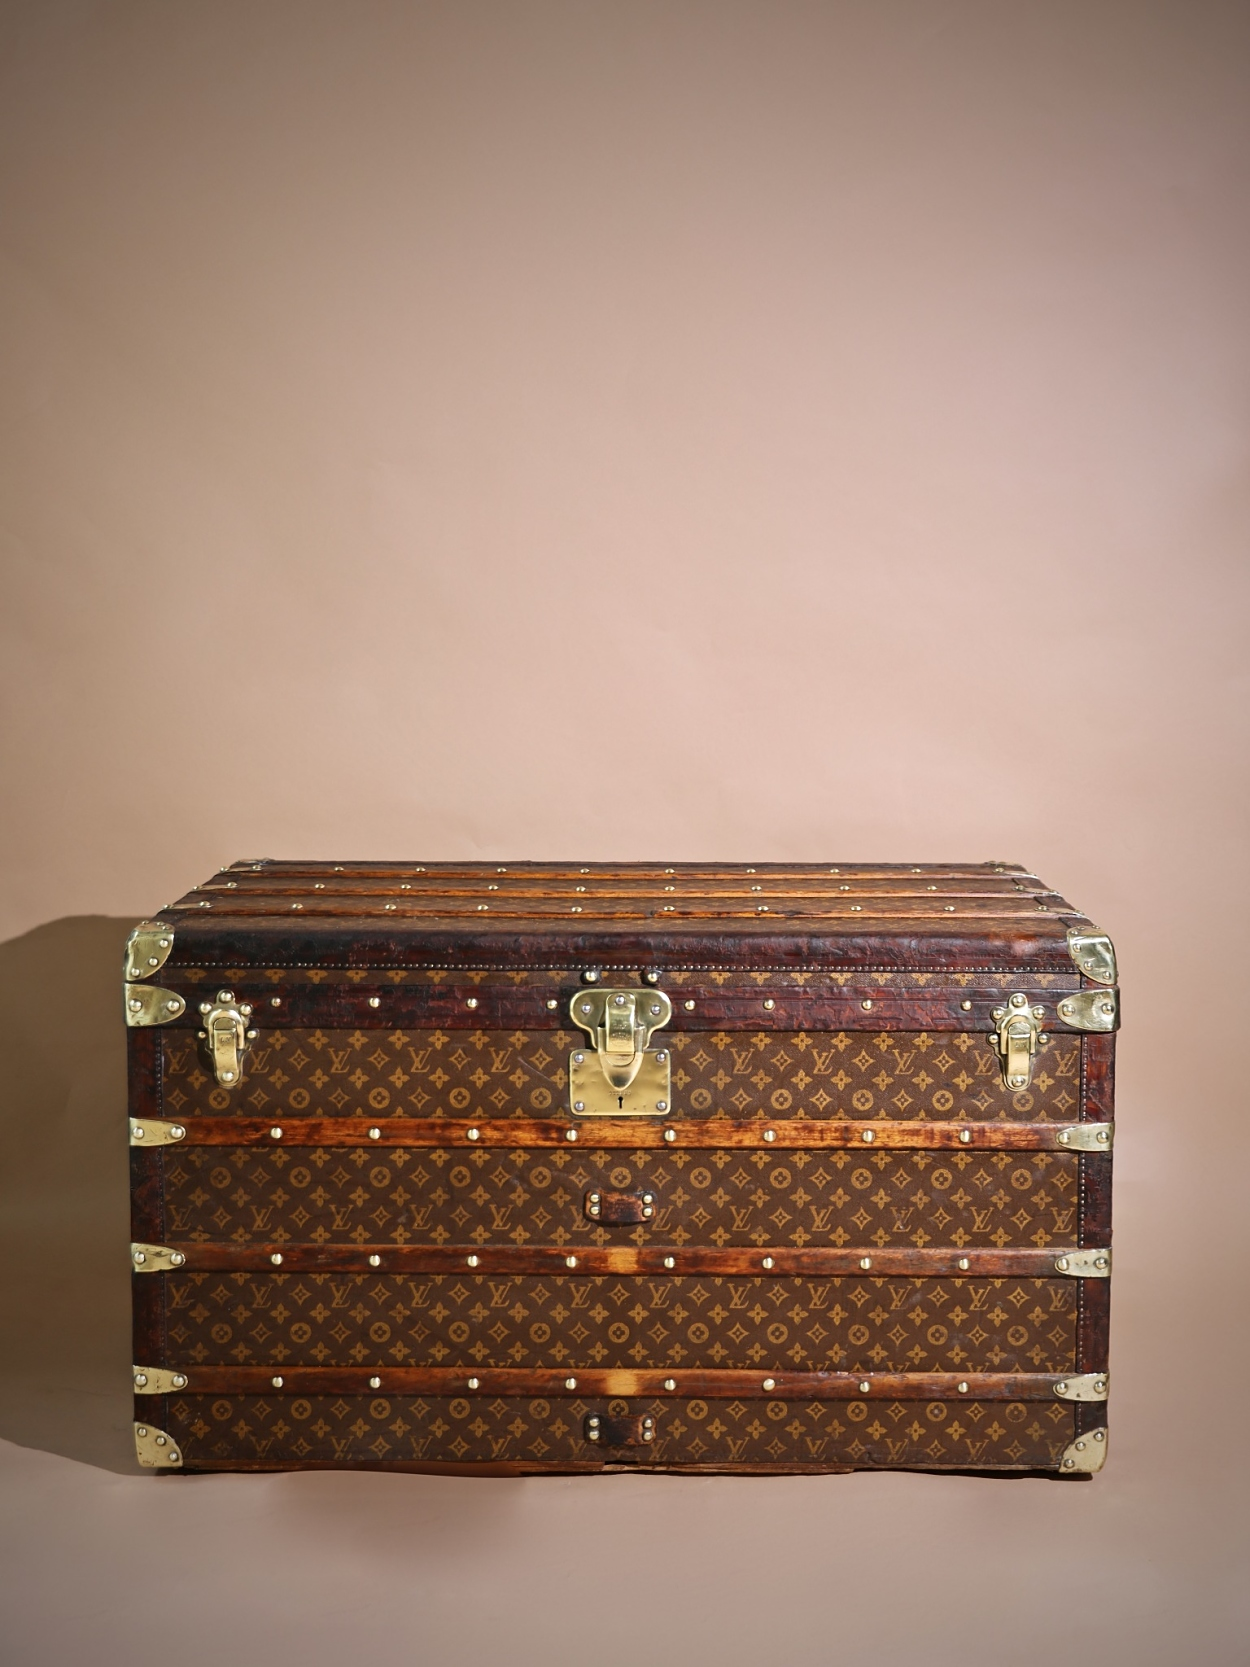 the-well-traveled-trunk-louis-vuitton-thumbnail-product-5739-1